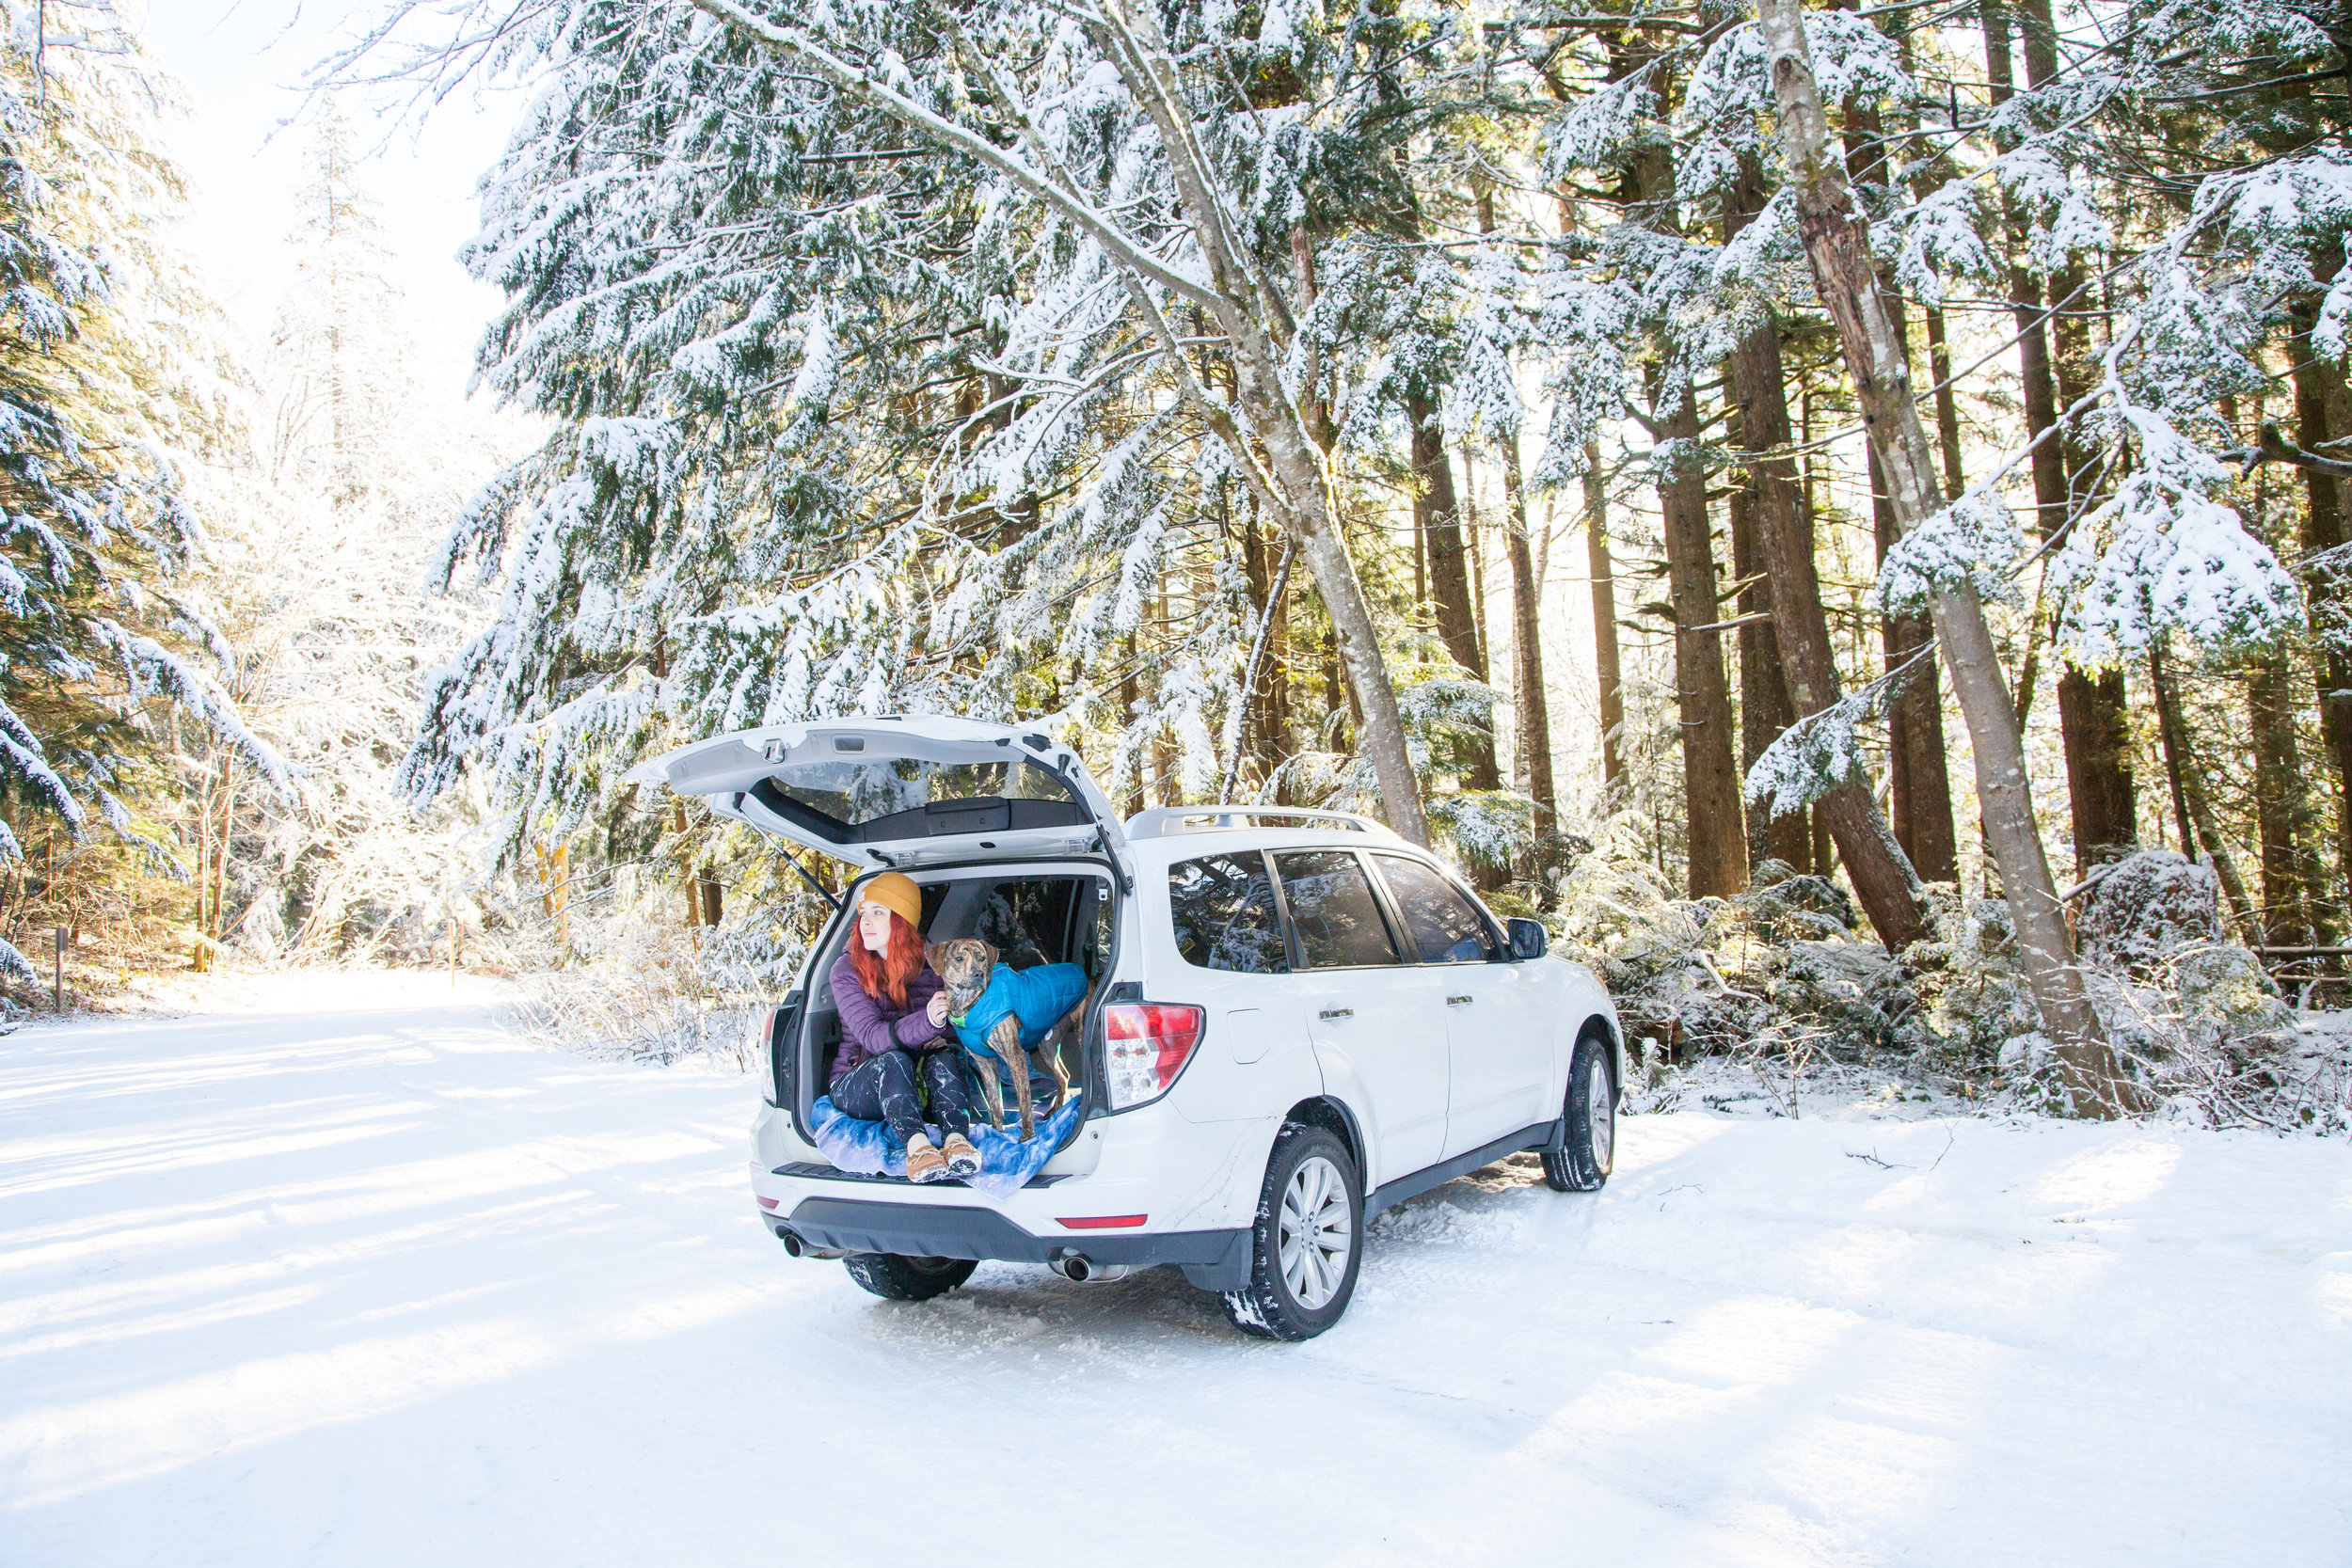 Don't own a car? Never fear! There are still ways for you to explore trails near Seattle!